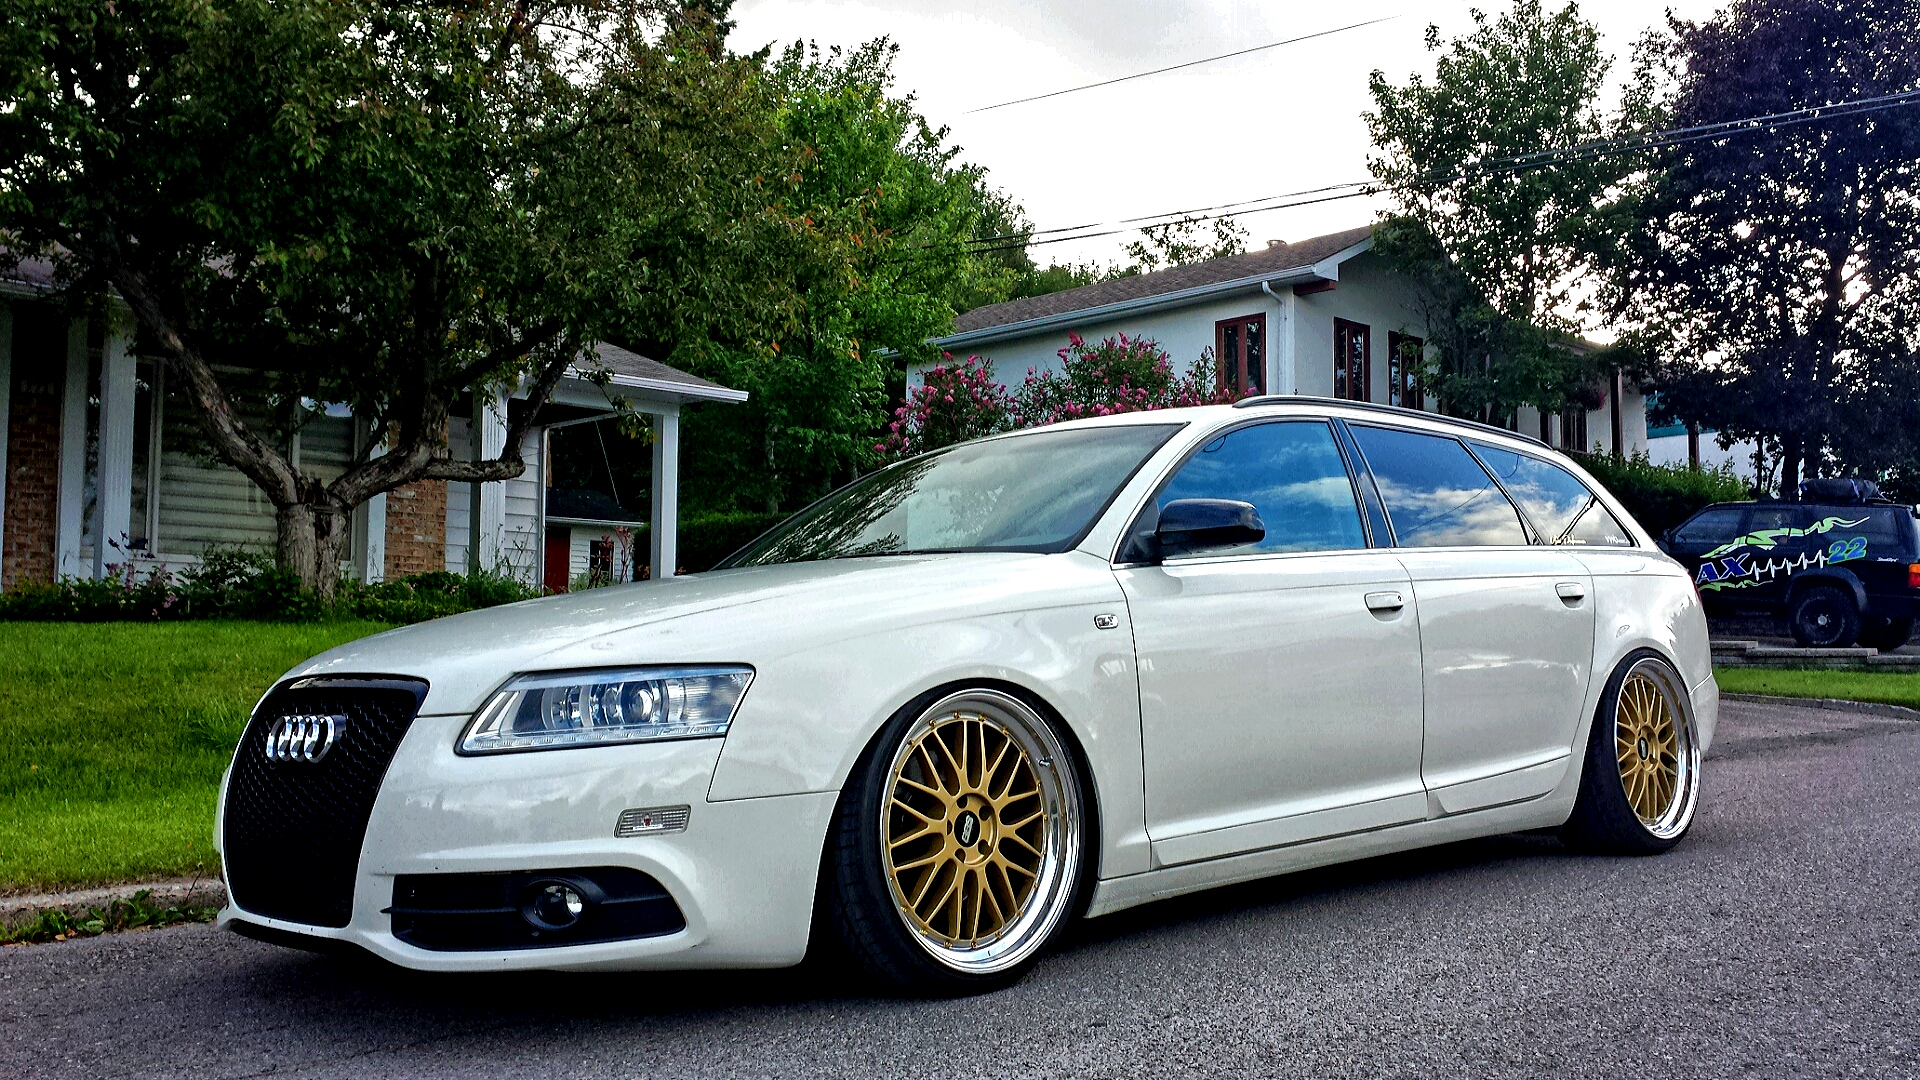 Audi A6 C6 Bbs Sx R19: Where The Beef? Show Your Fat, Stanced Avant!